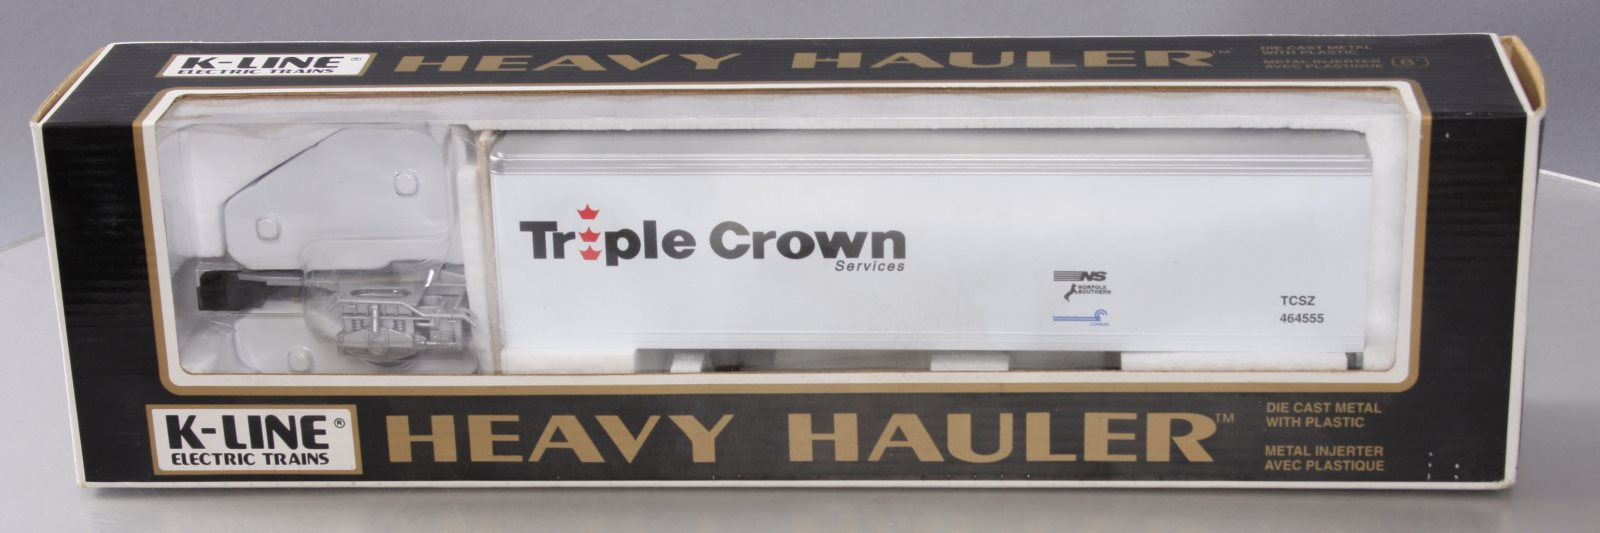 Buy K-Line K464555 Triple Crown Heavy Hauler LN/Box | Trainz